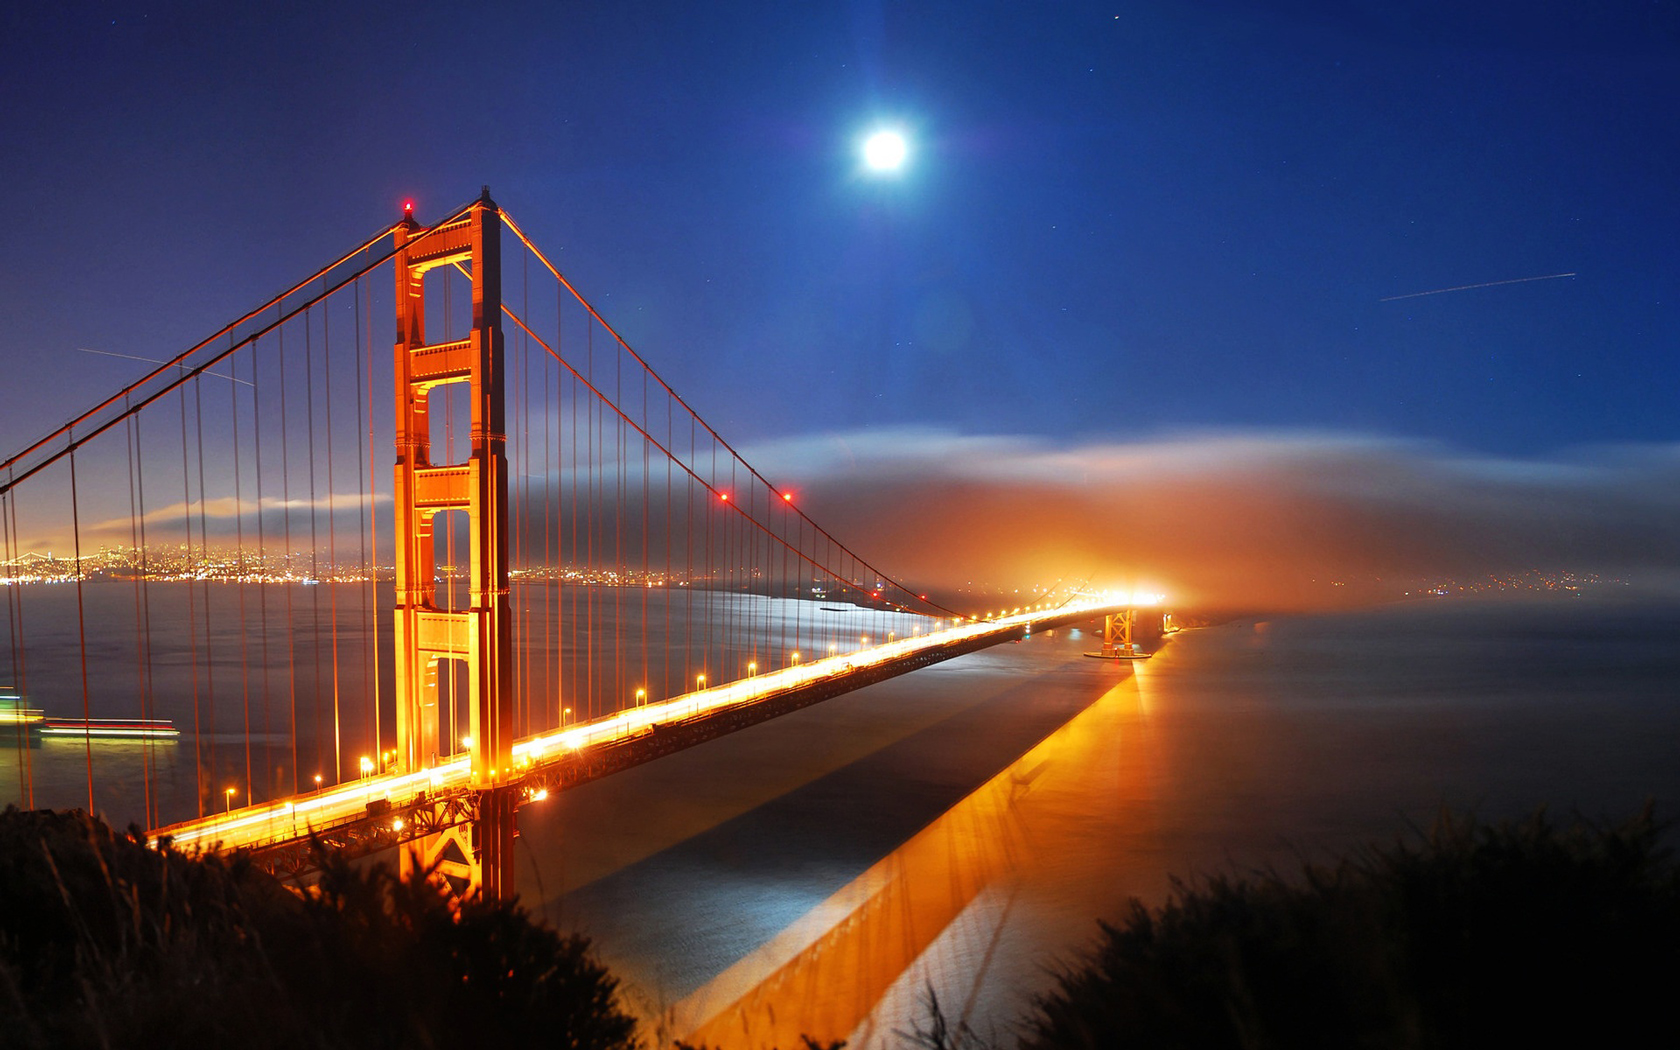 San Francisco Bridge Night Lights computer desktop wallpapers 1680x1050